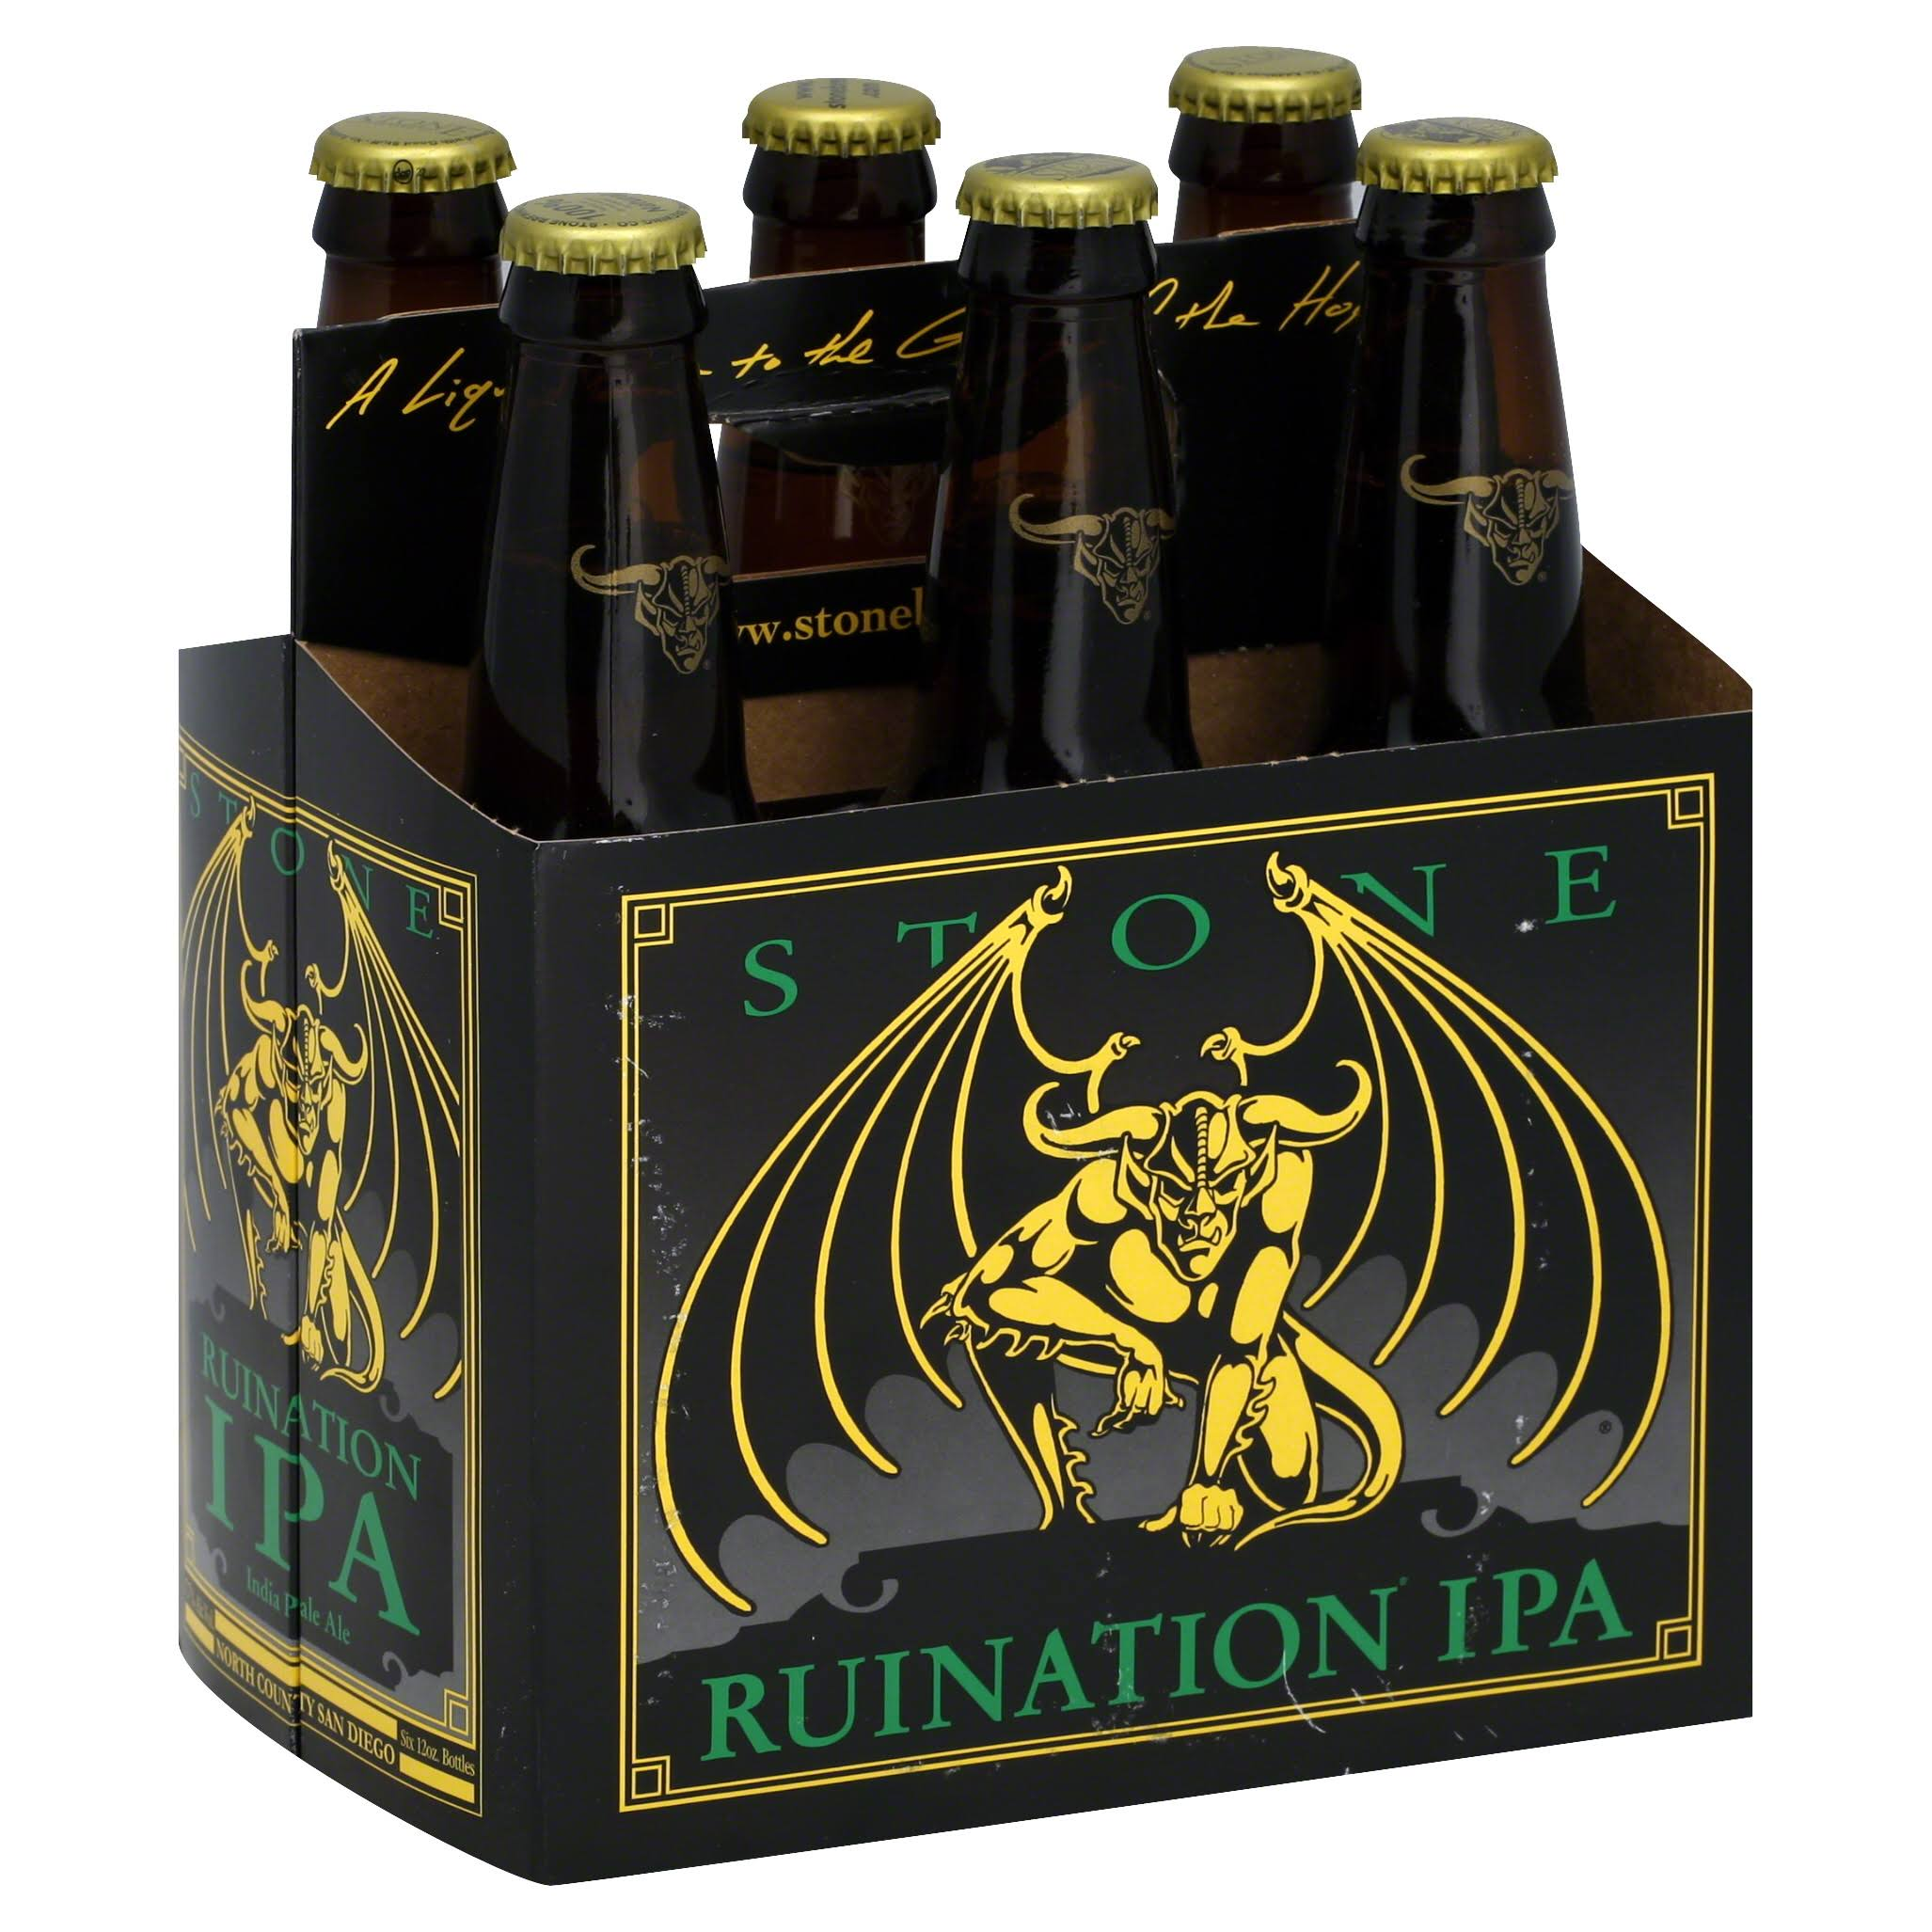 Stone Ale, India Pale, Ruination - 6 pack, 12 fl oz bottles